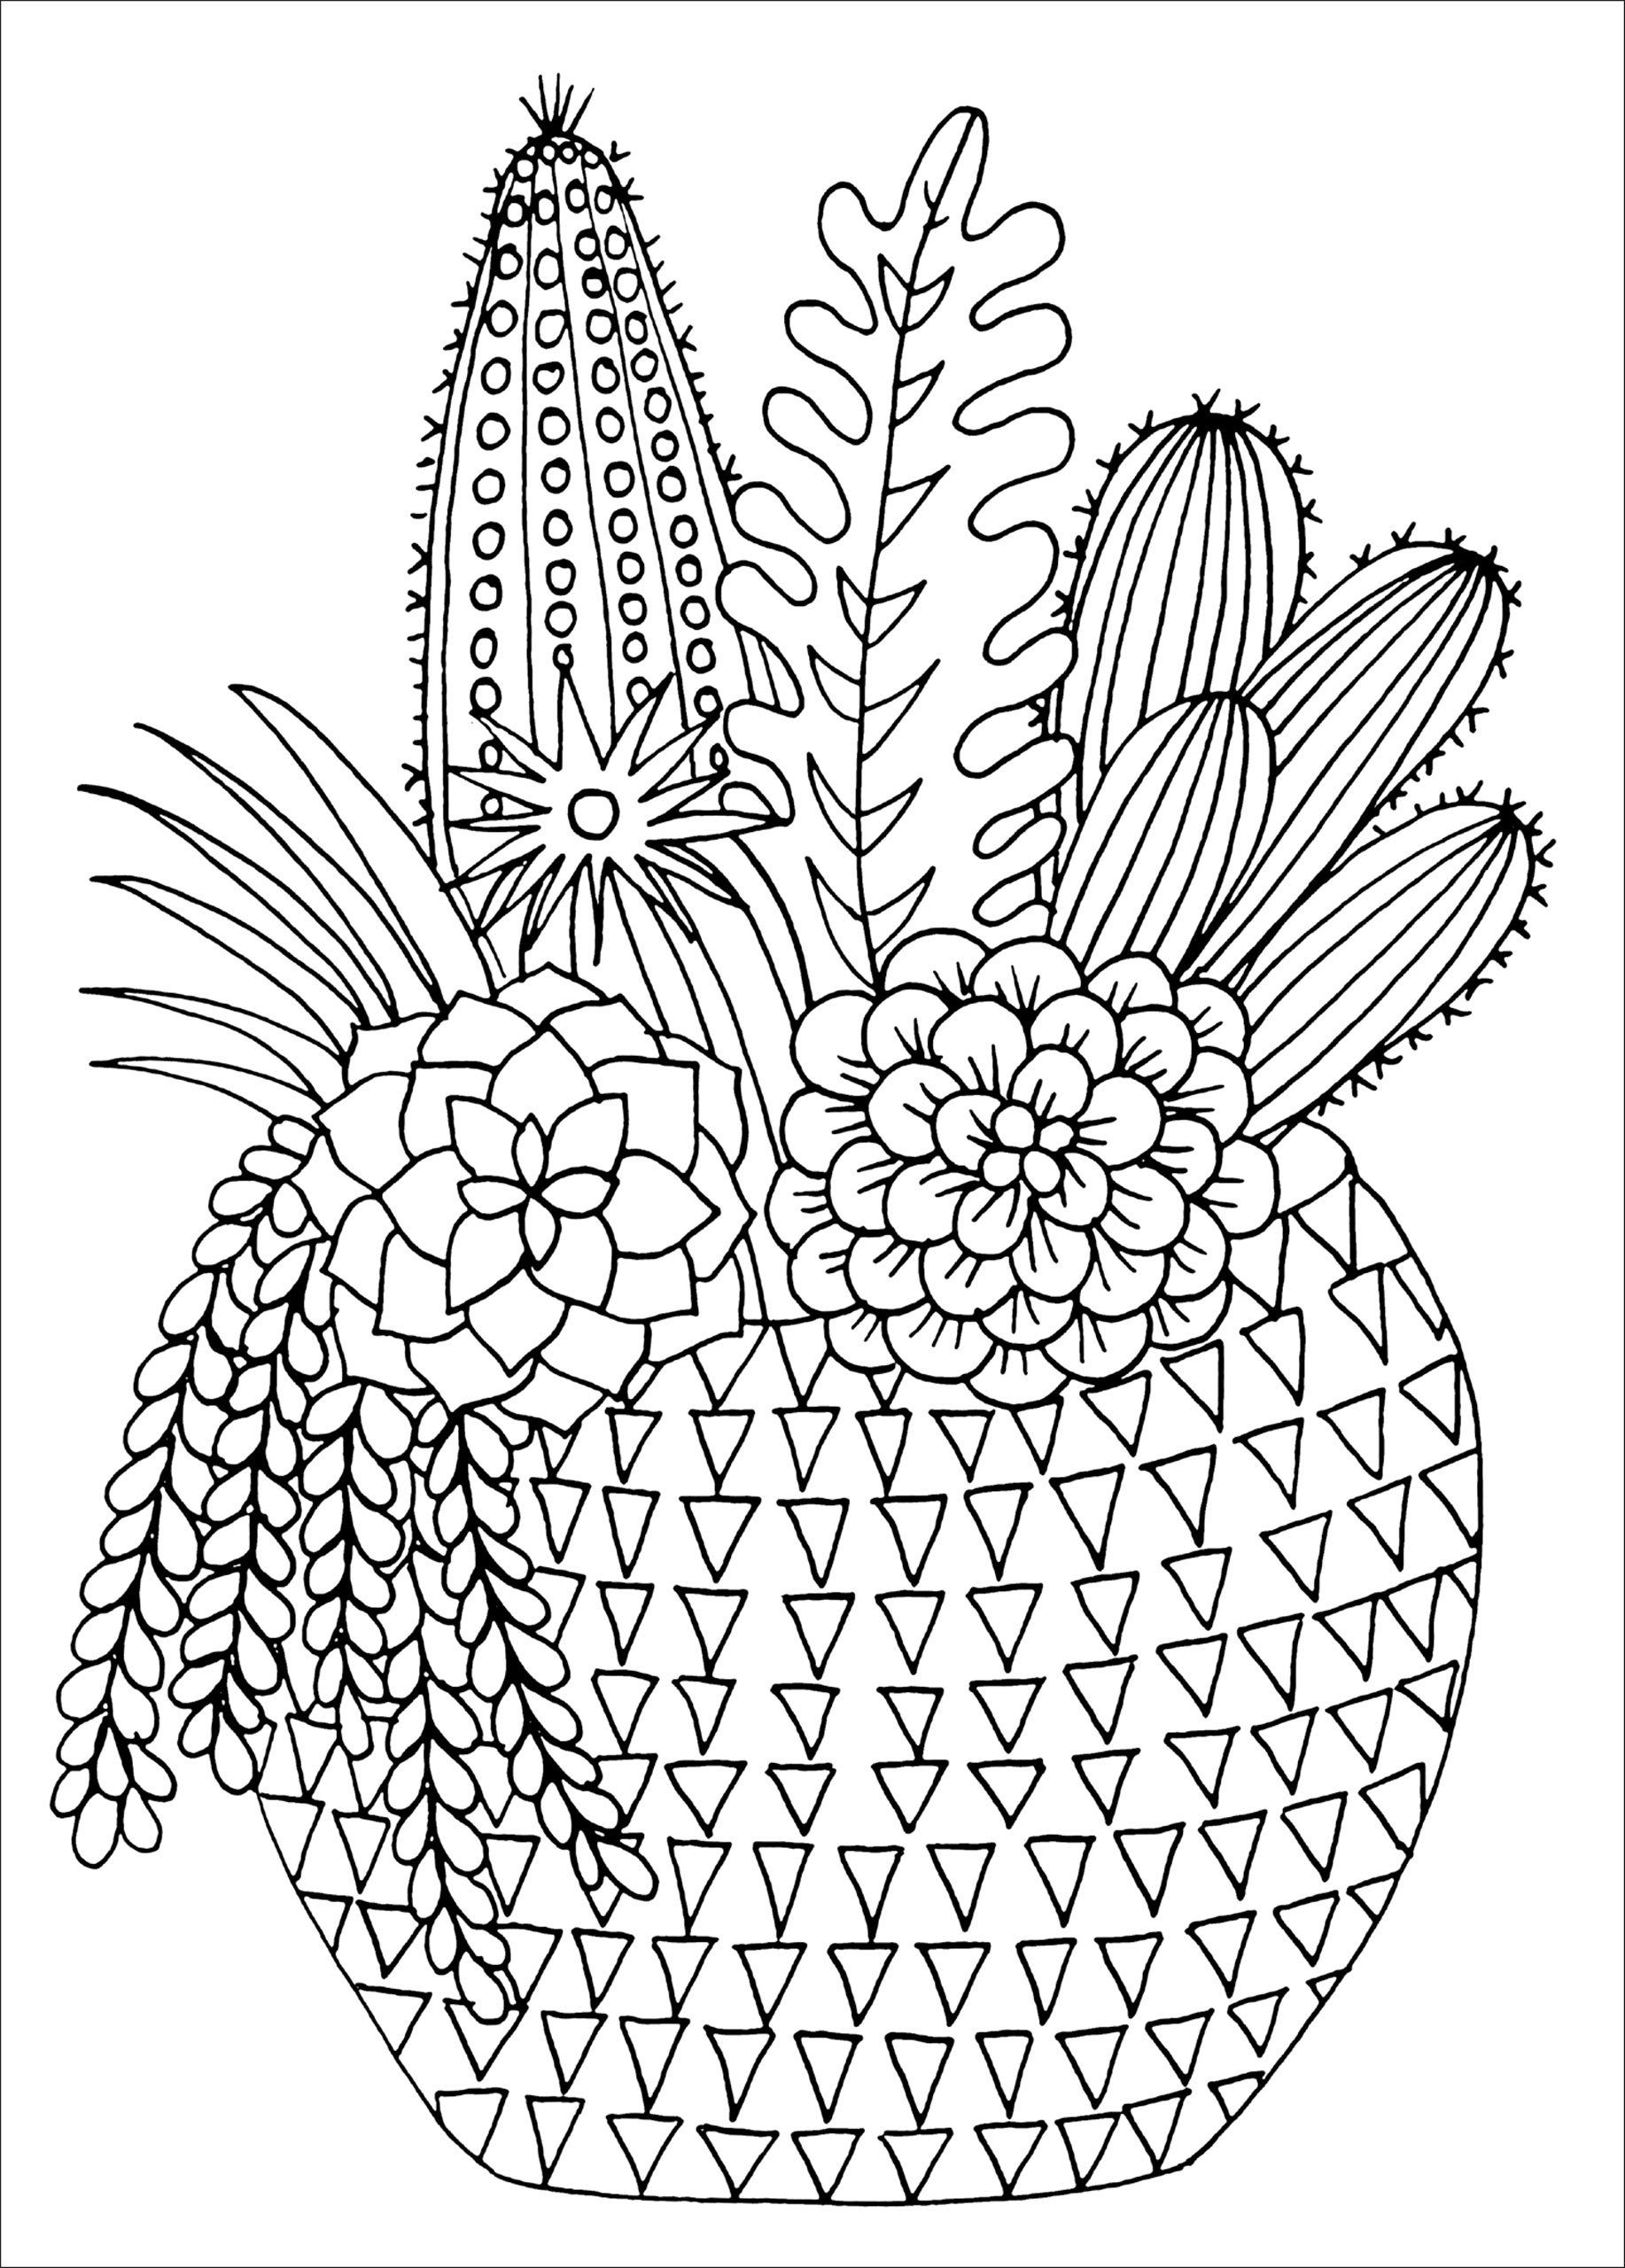 Amazon Succulents Portable Adult Coloring Book 31 Stress Relieving Designs